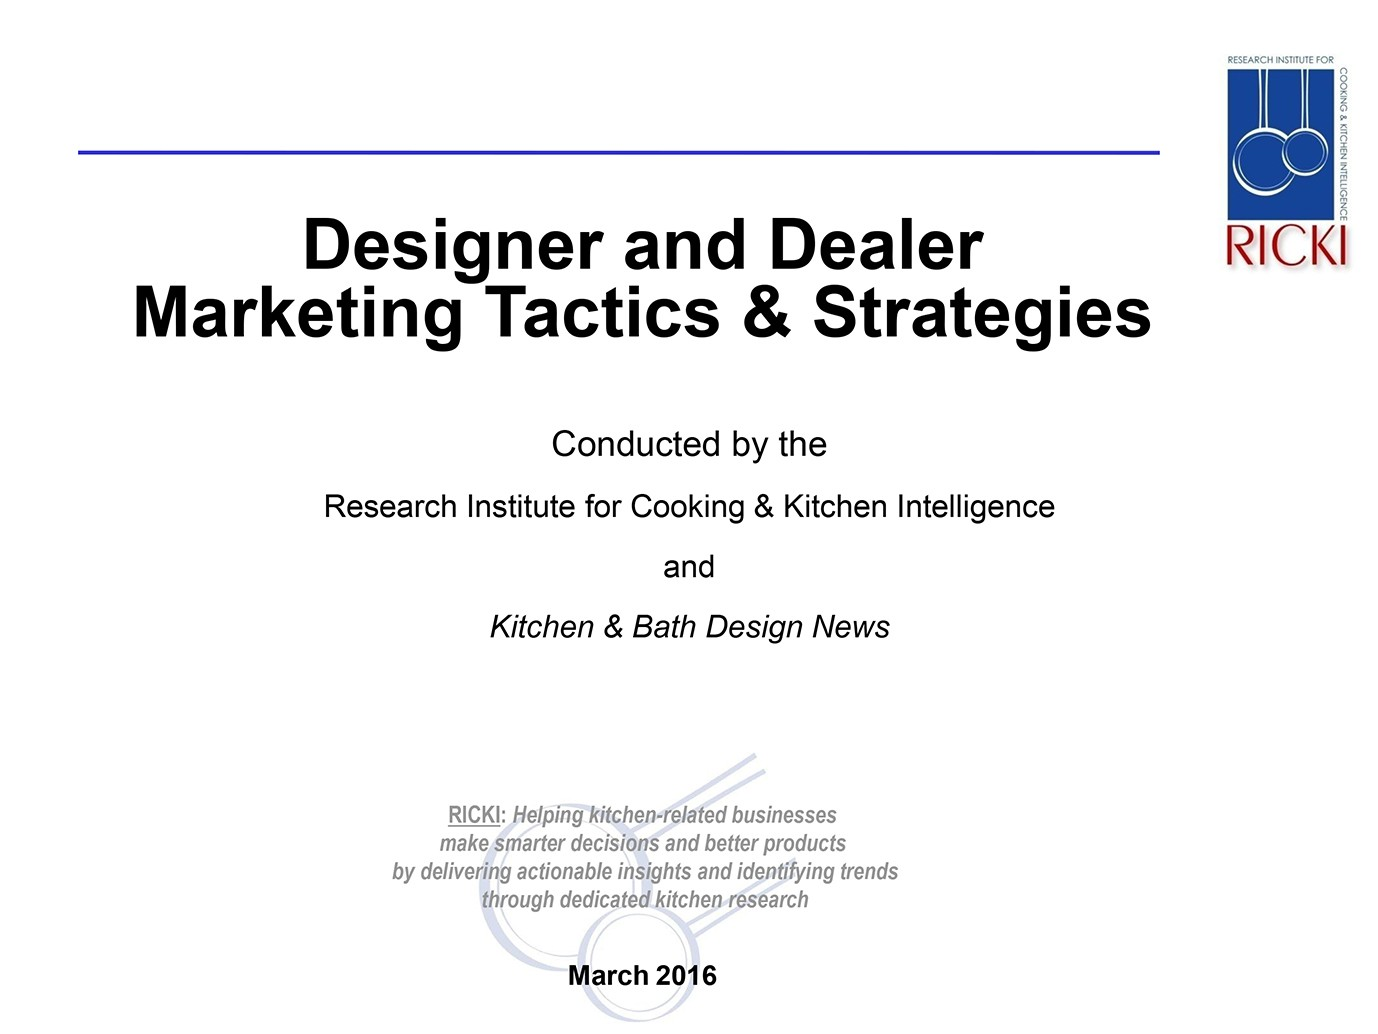 Designer and Dealer Marketing Tactics & Strategies